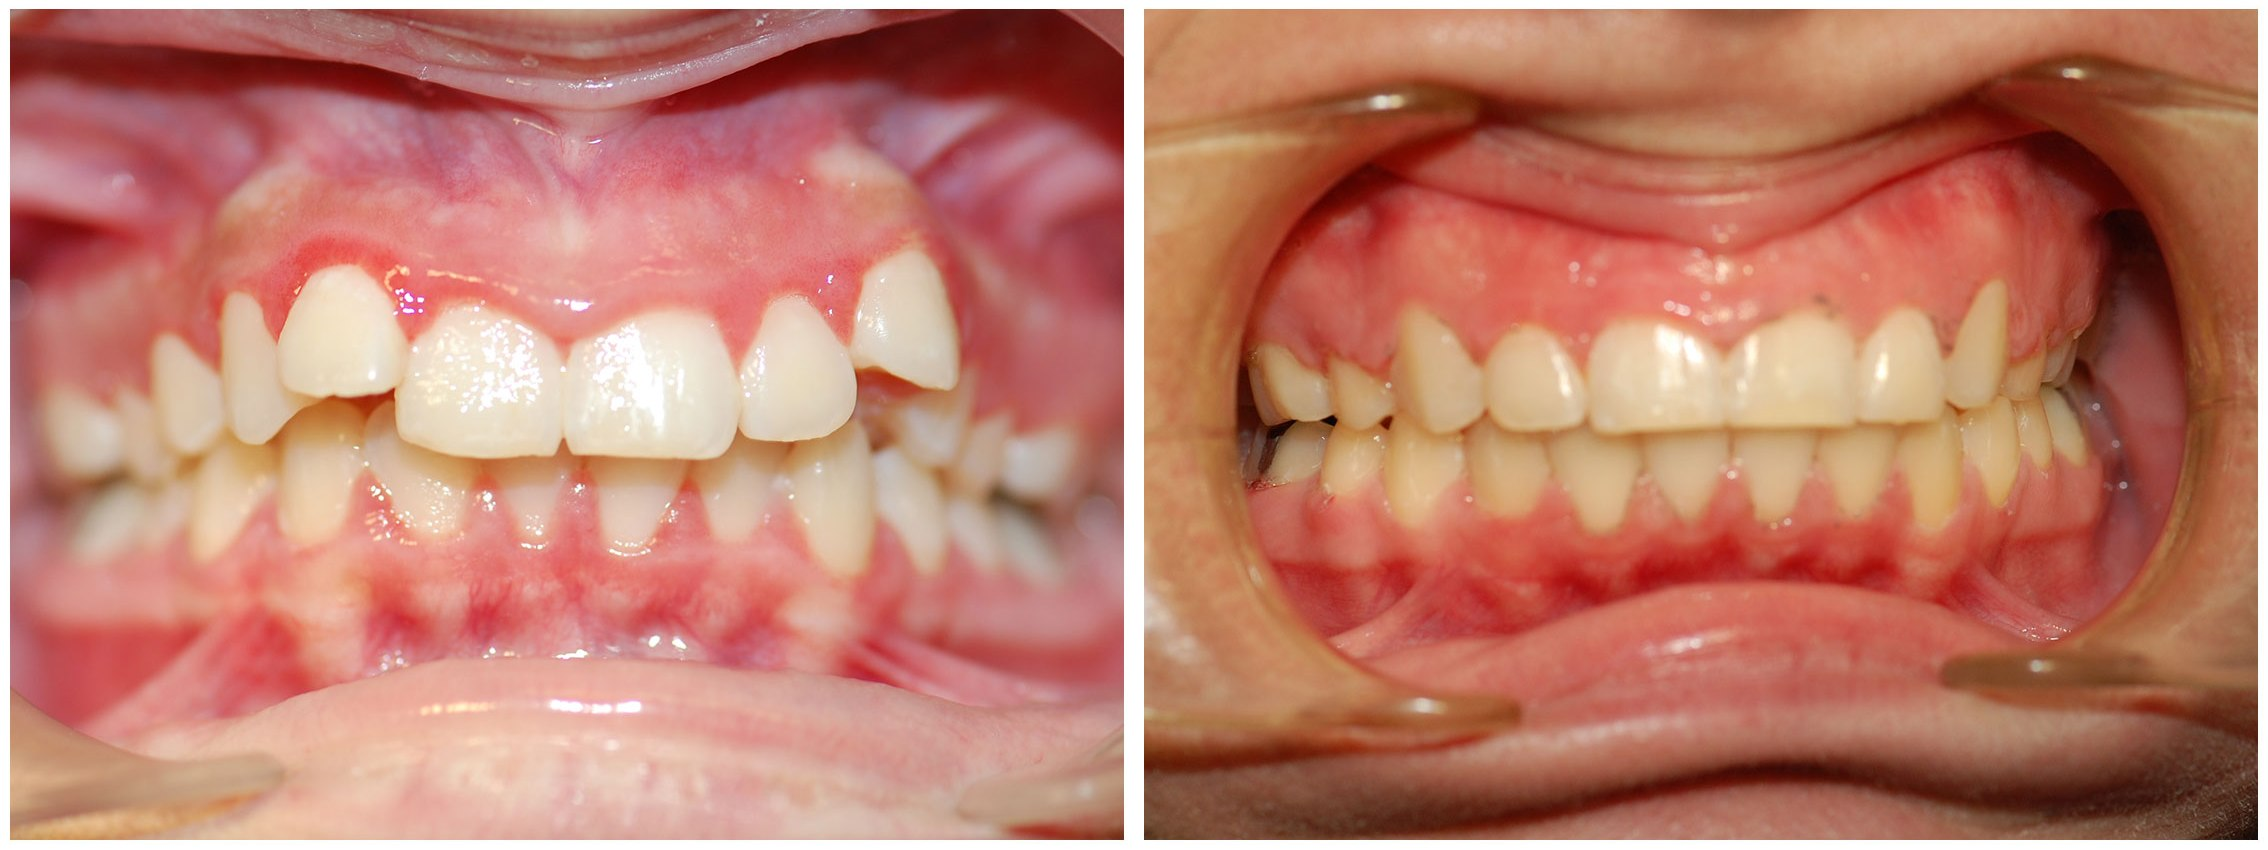 Orthodontist Dental Braces Before & After